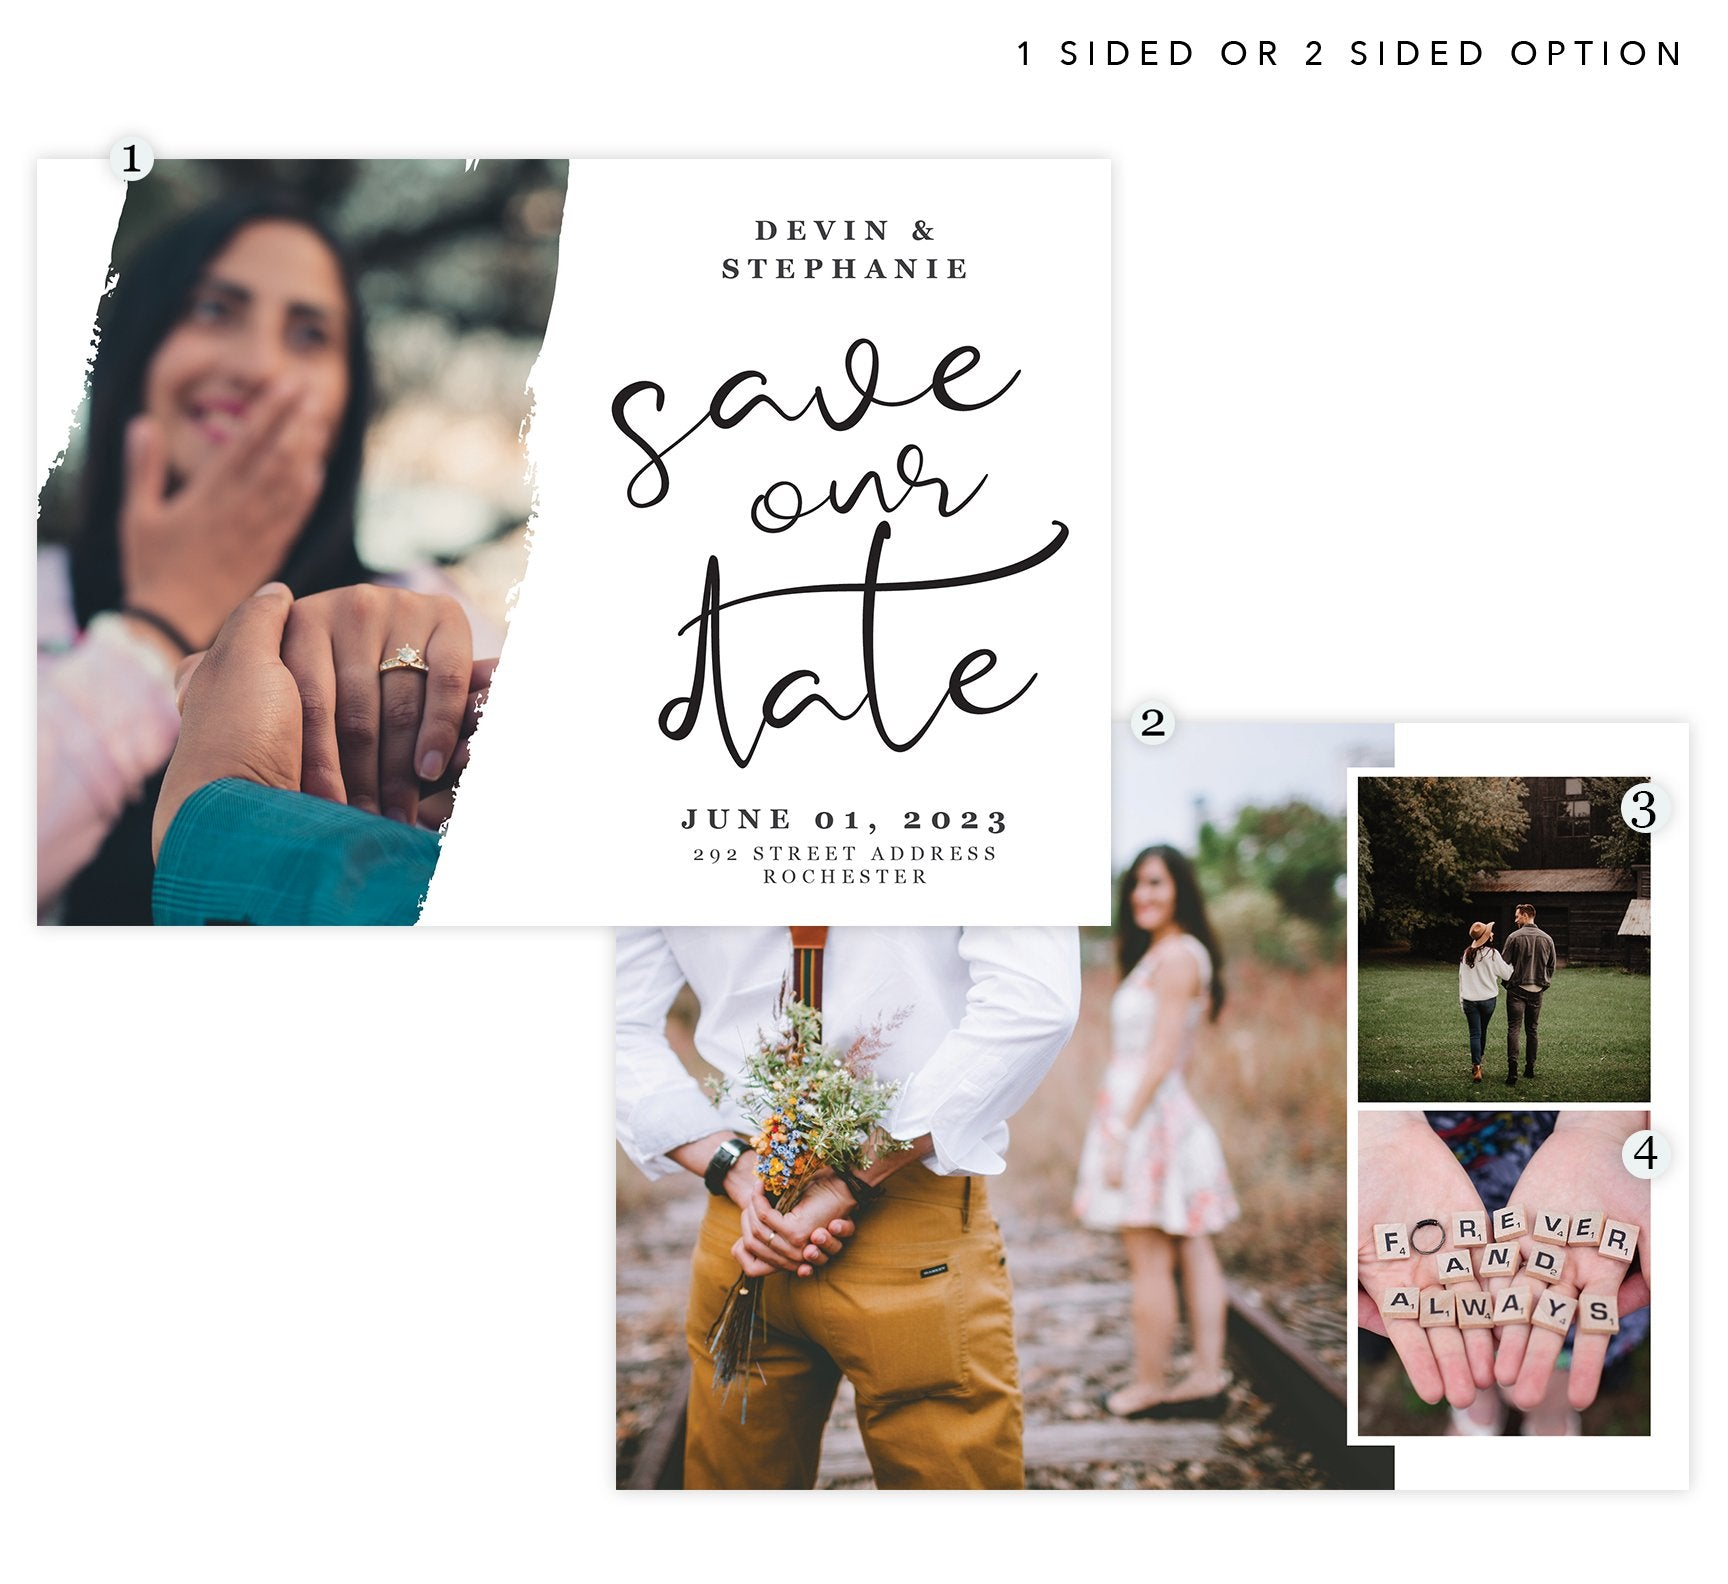 Wedding White Save the Date Card with 3 image spots